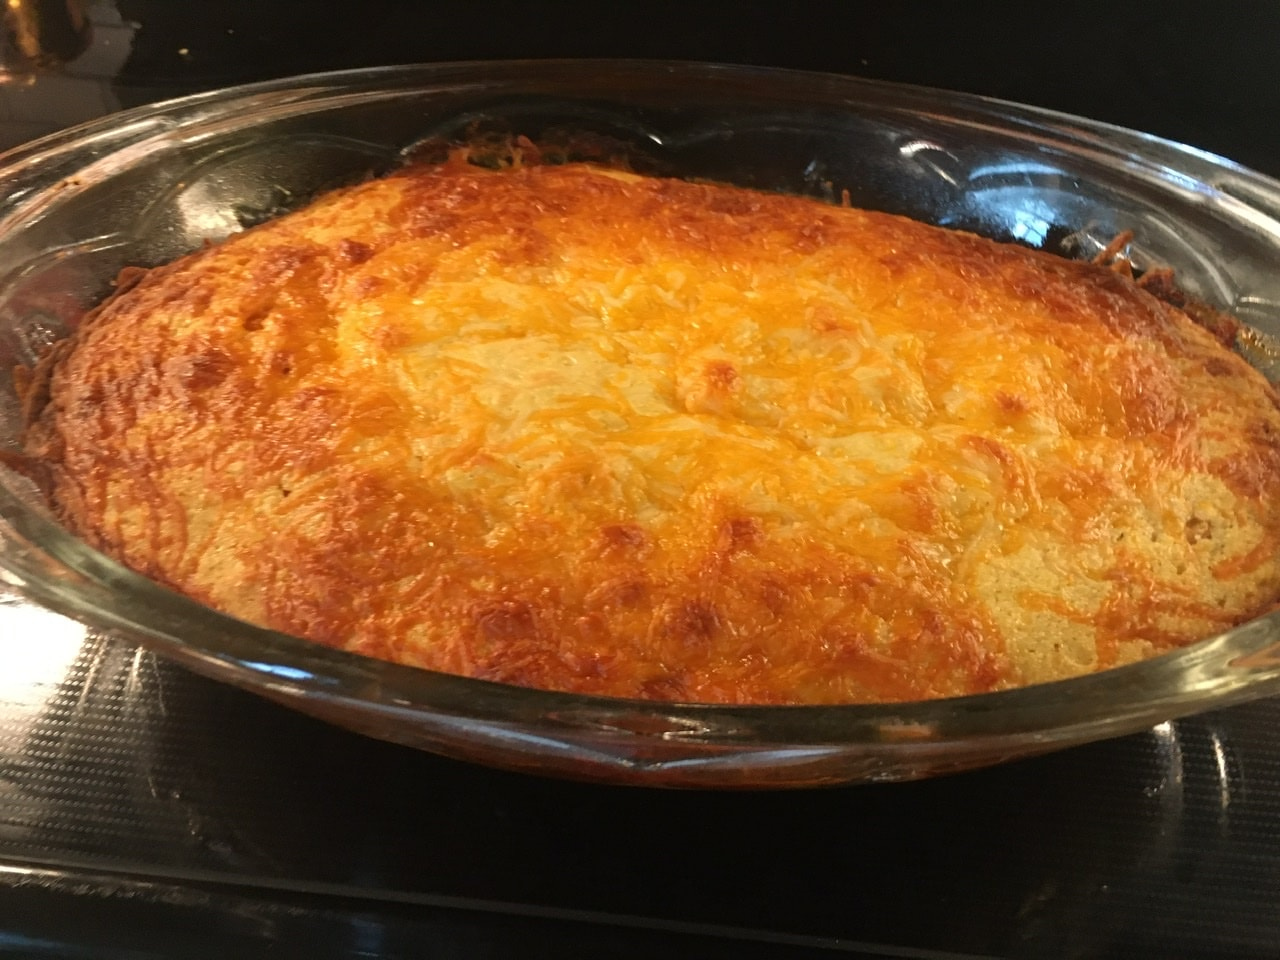 Casserole baked to golden brown.